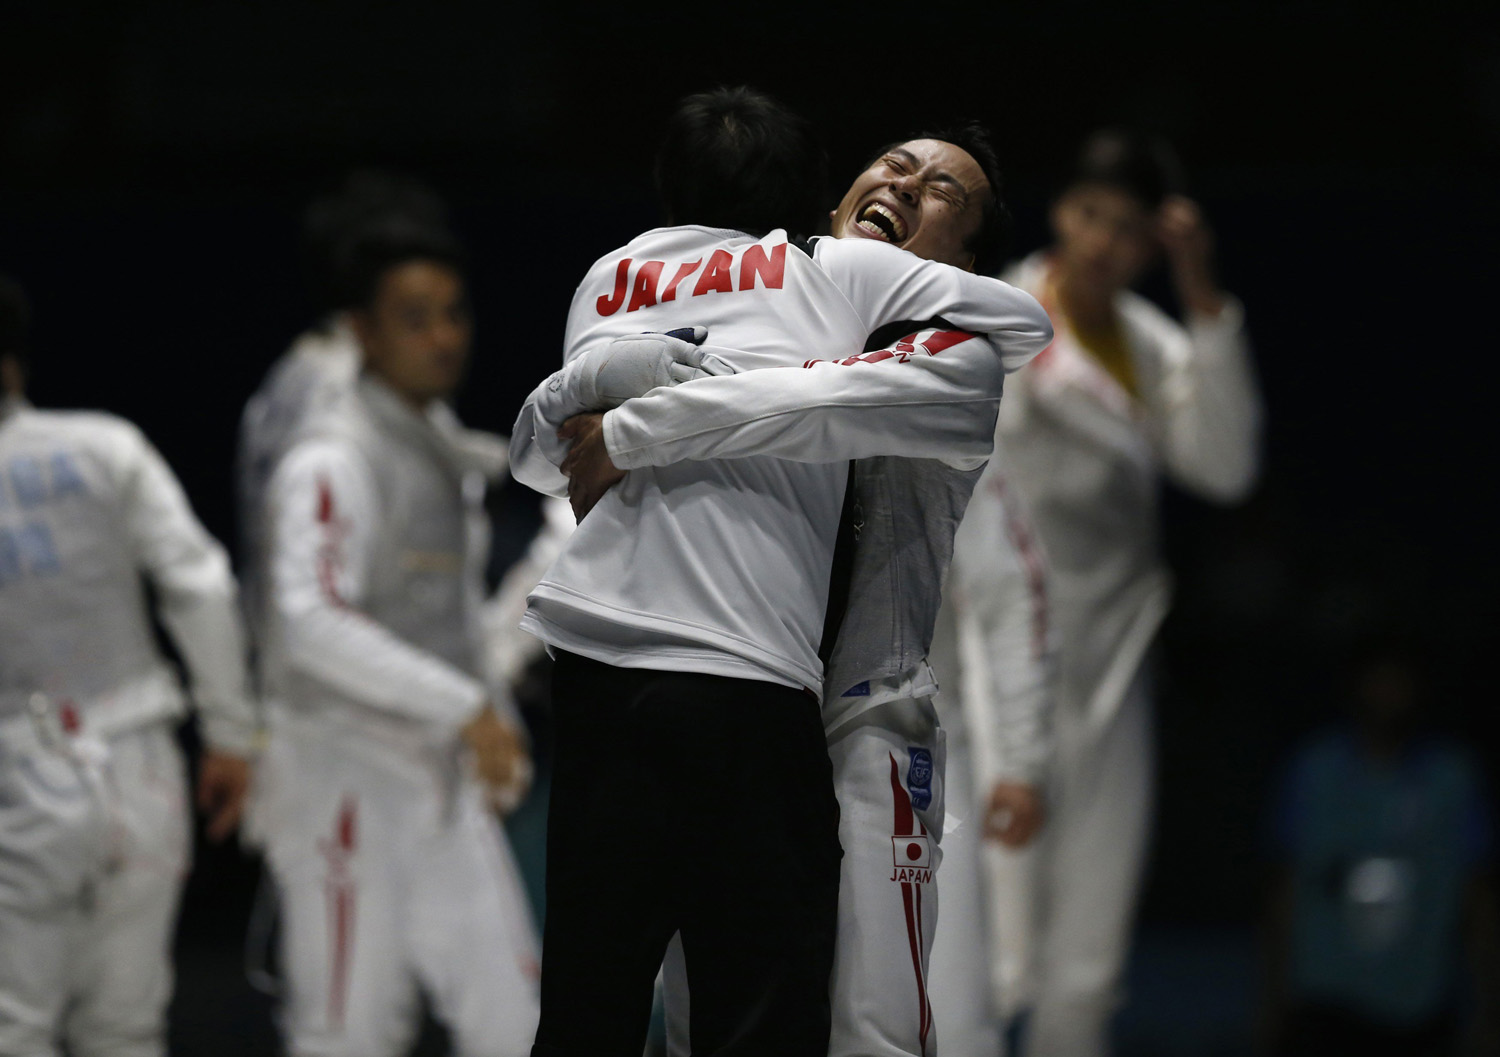 Japan's Yuki Ota (R) celebrates with a team member after winning their men's foil team fencing competition final against China at Goyang Gymnasium during the 17th Asian Games in Incheon, South Korea, on  Sept. 25, 2014.